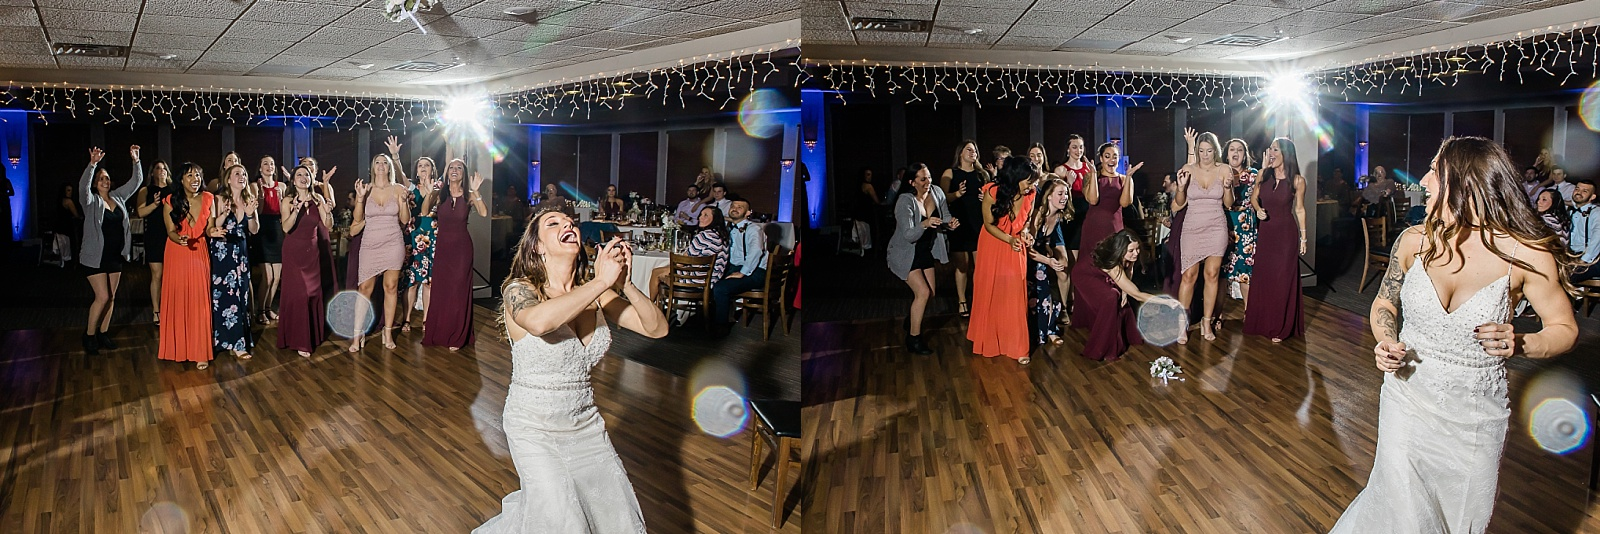 south bend wedding photographer the woodward room_0089.jpg